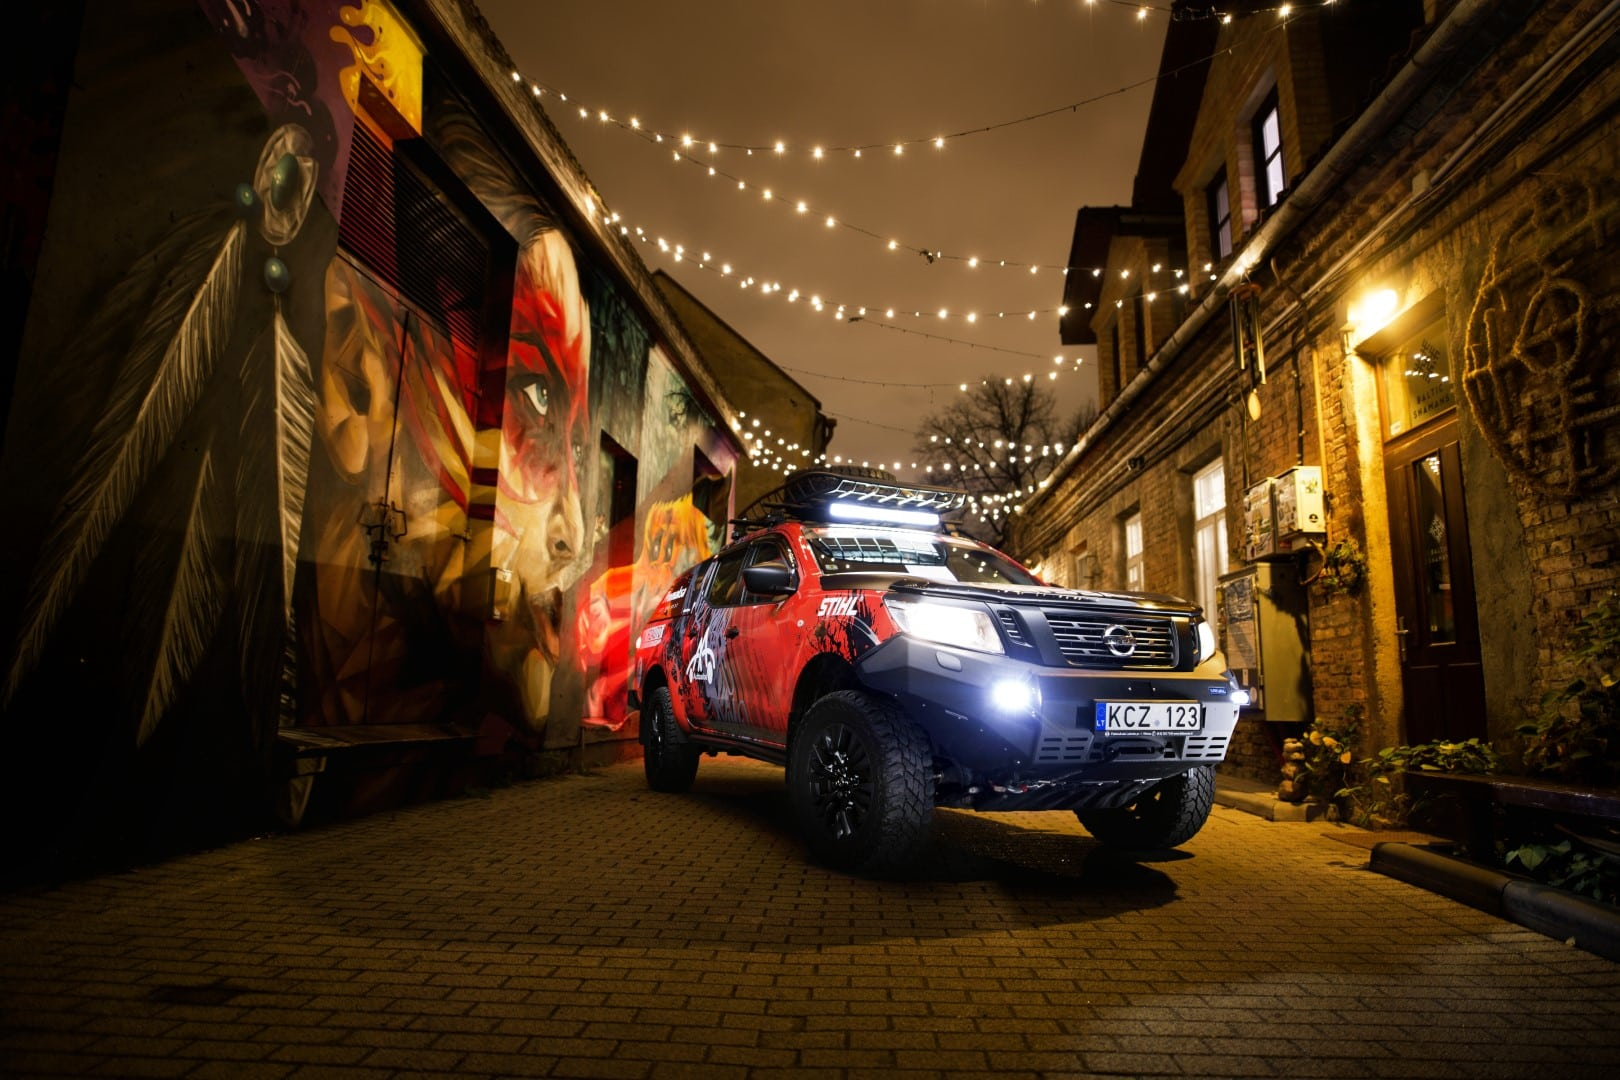 Igo2Dakar Nissan Navara under the Christmas lights next to Shnioka street art piece Giedrius Matulaitis matulaitis.lt